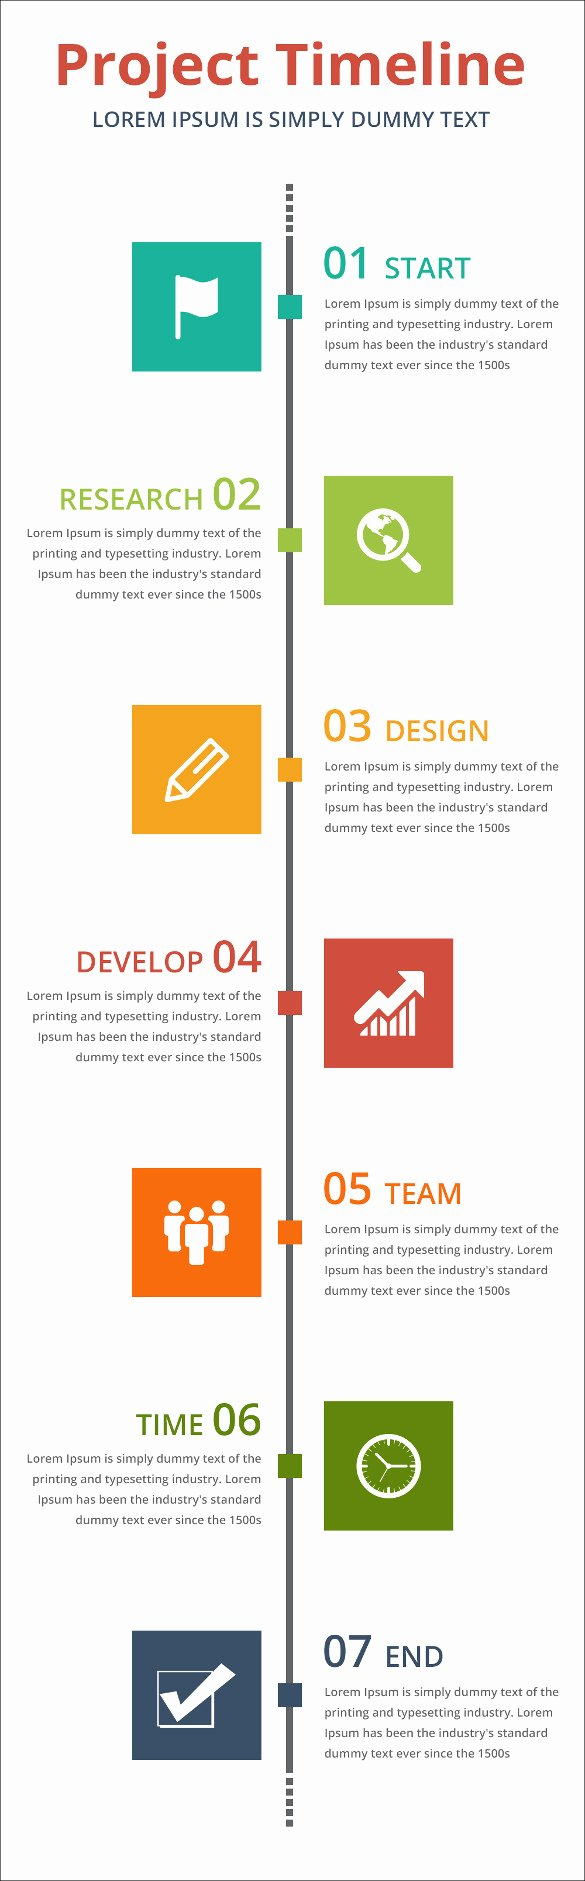 Project Timeline Template Word Inspirational Project Timeline Templates 19 Free Word Ppt format